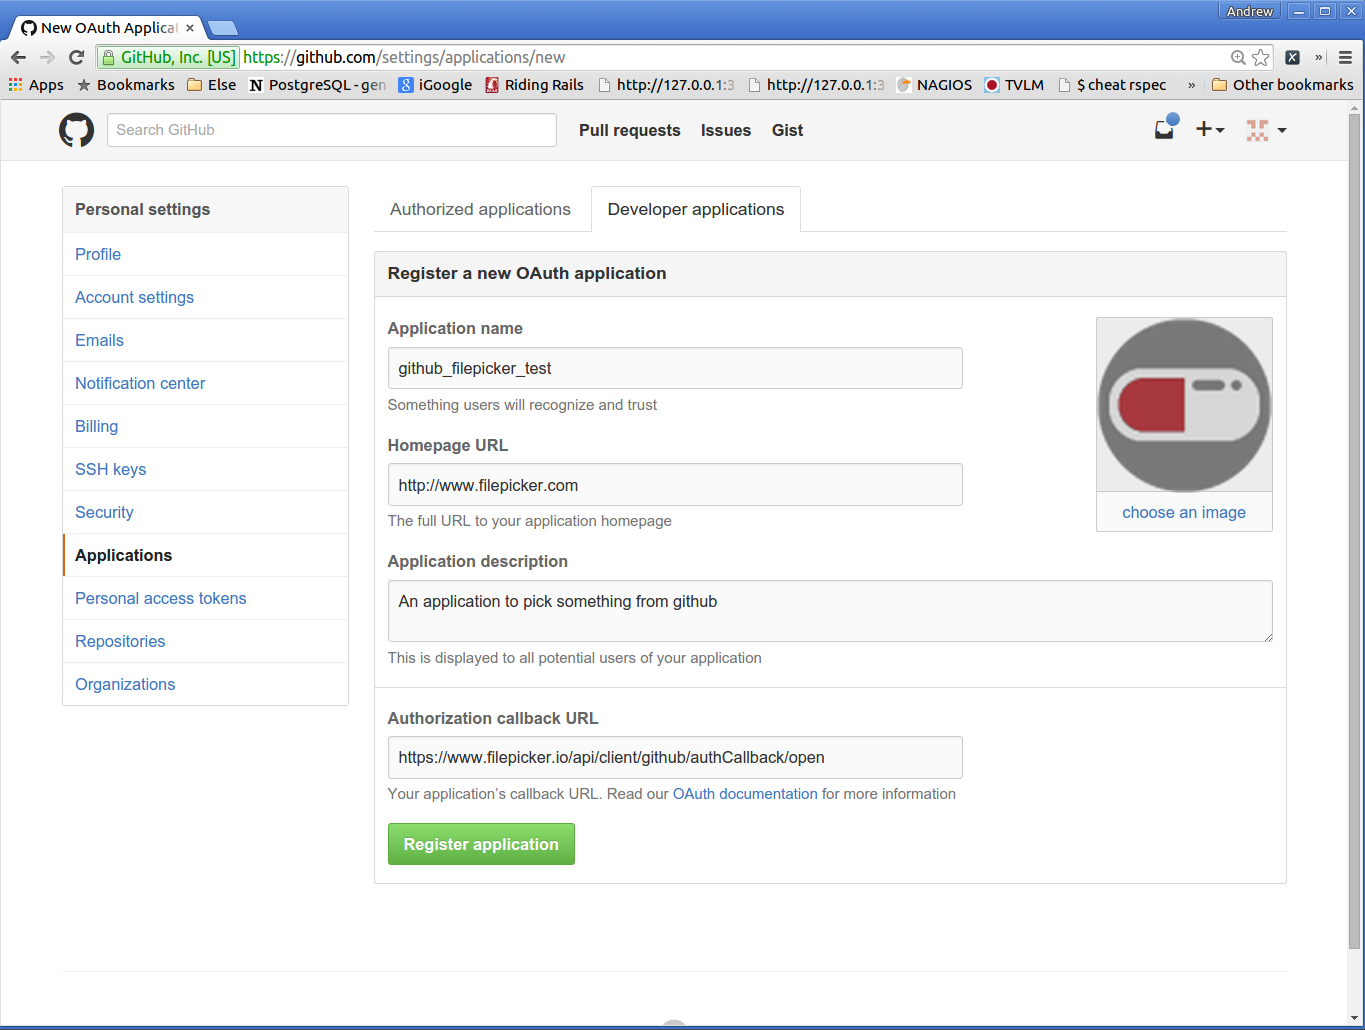 Sign into GitHub, fill out the required information and click Register the application